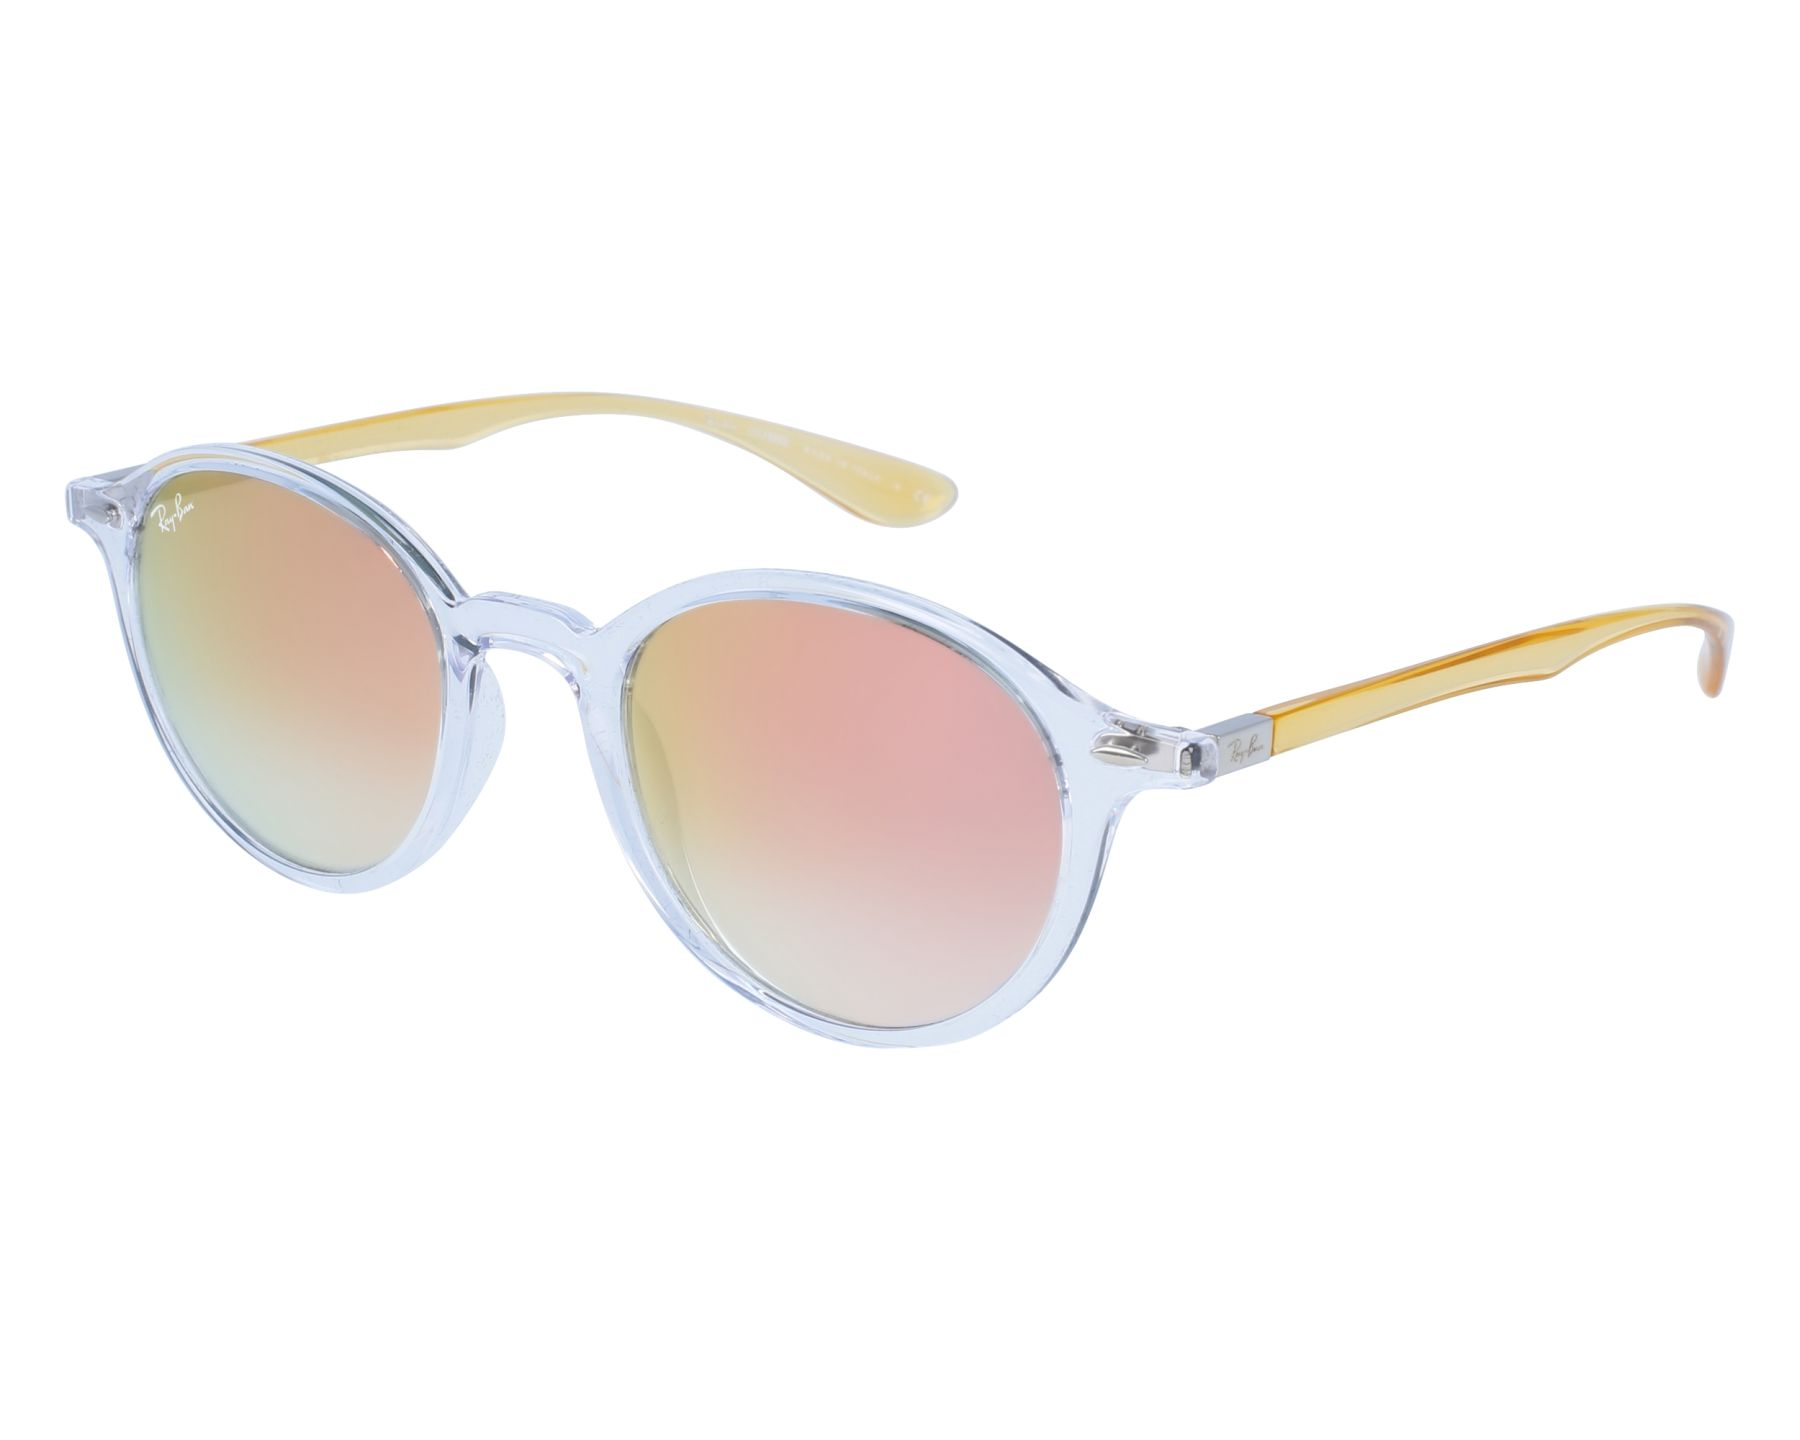 05566673f3f Sunglasses Ray-Ban RB-4237 62887Y 50-21 White Yellow front view